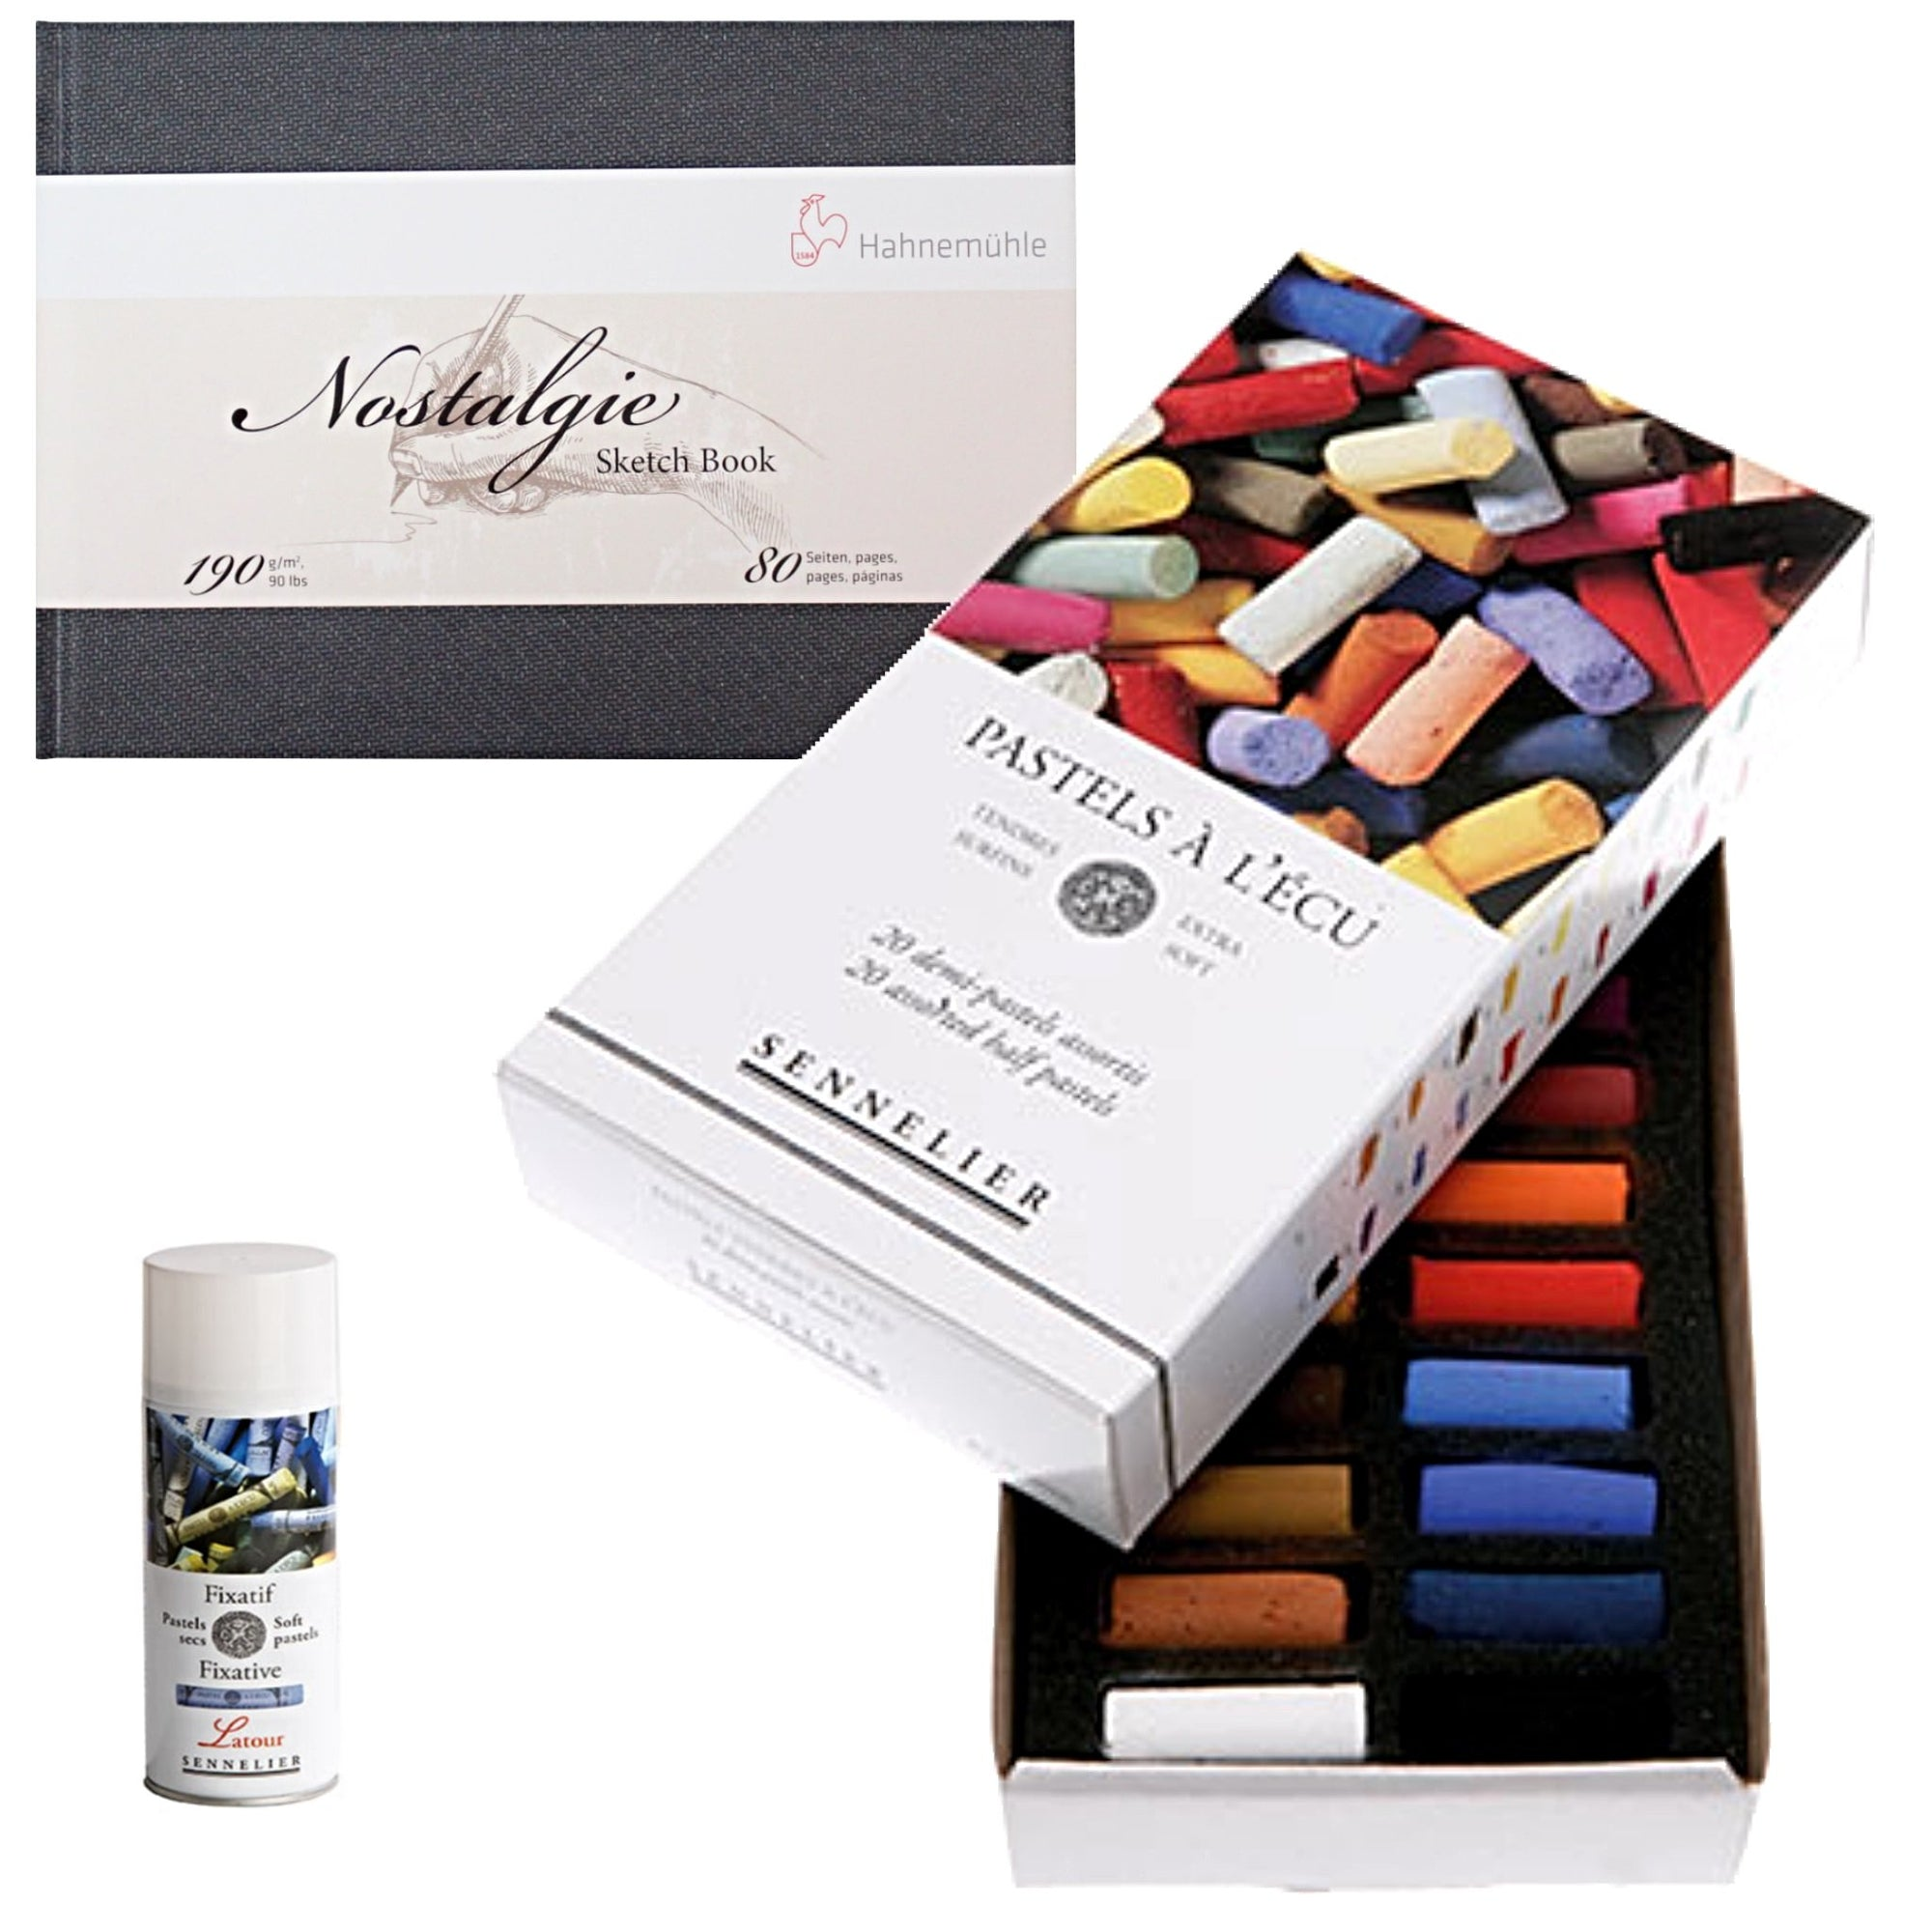 Pastel Beginner Sennelier Half Pastel Set of 20 with a Hahnemuhle Nostalgie Sketch Book - A5 Landscape and Sennelier Soft Pastel Fixative - Latour - 400ml Aerosol Can